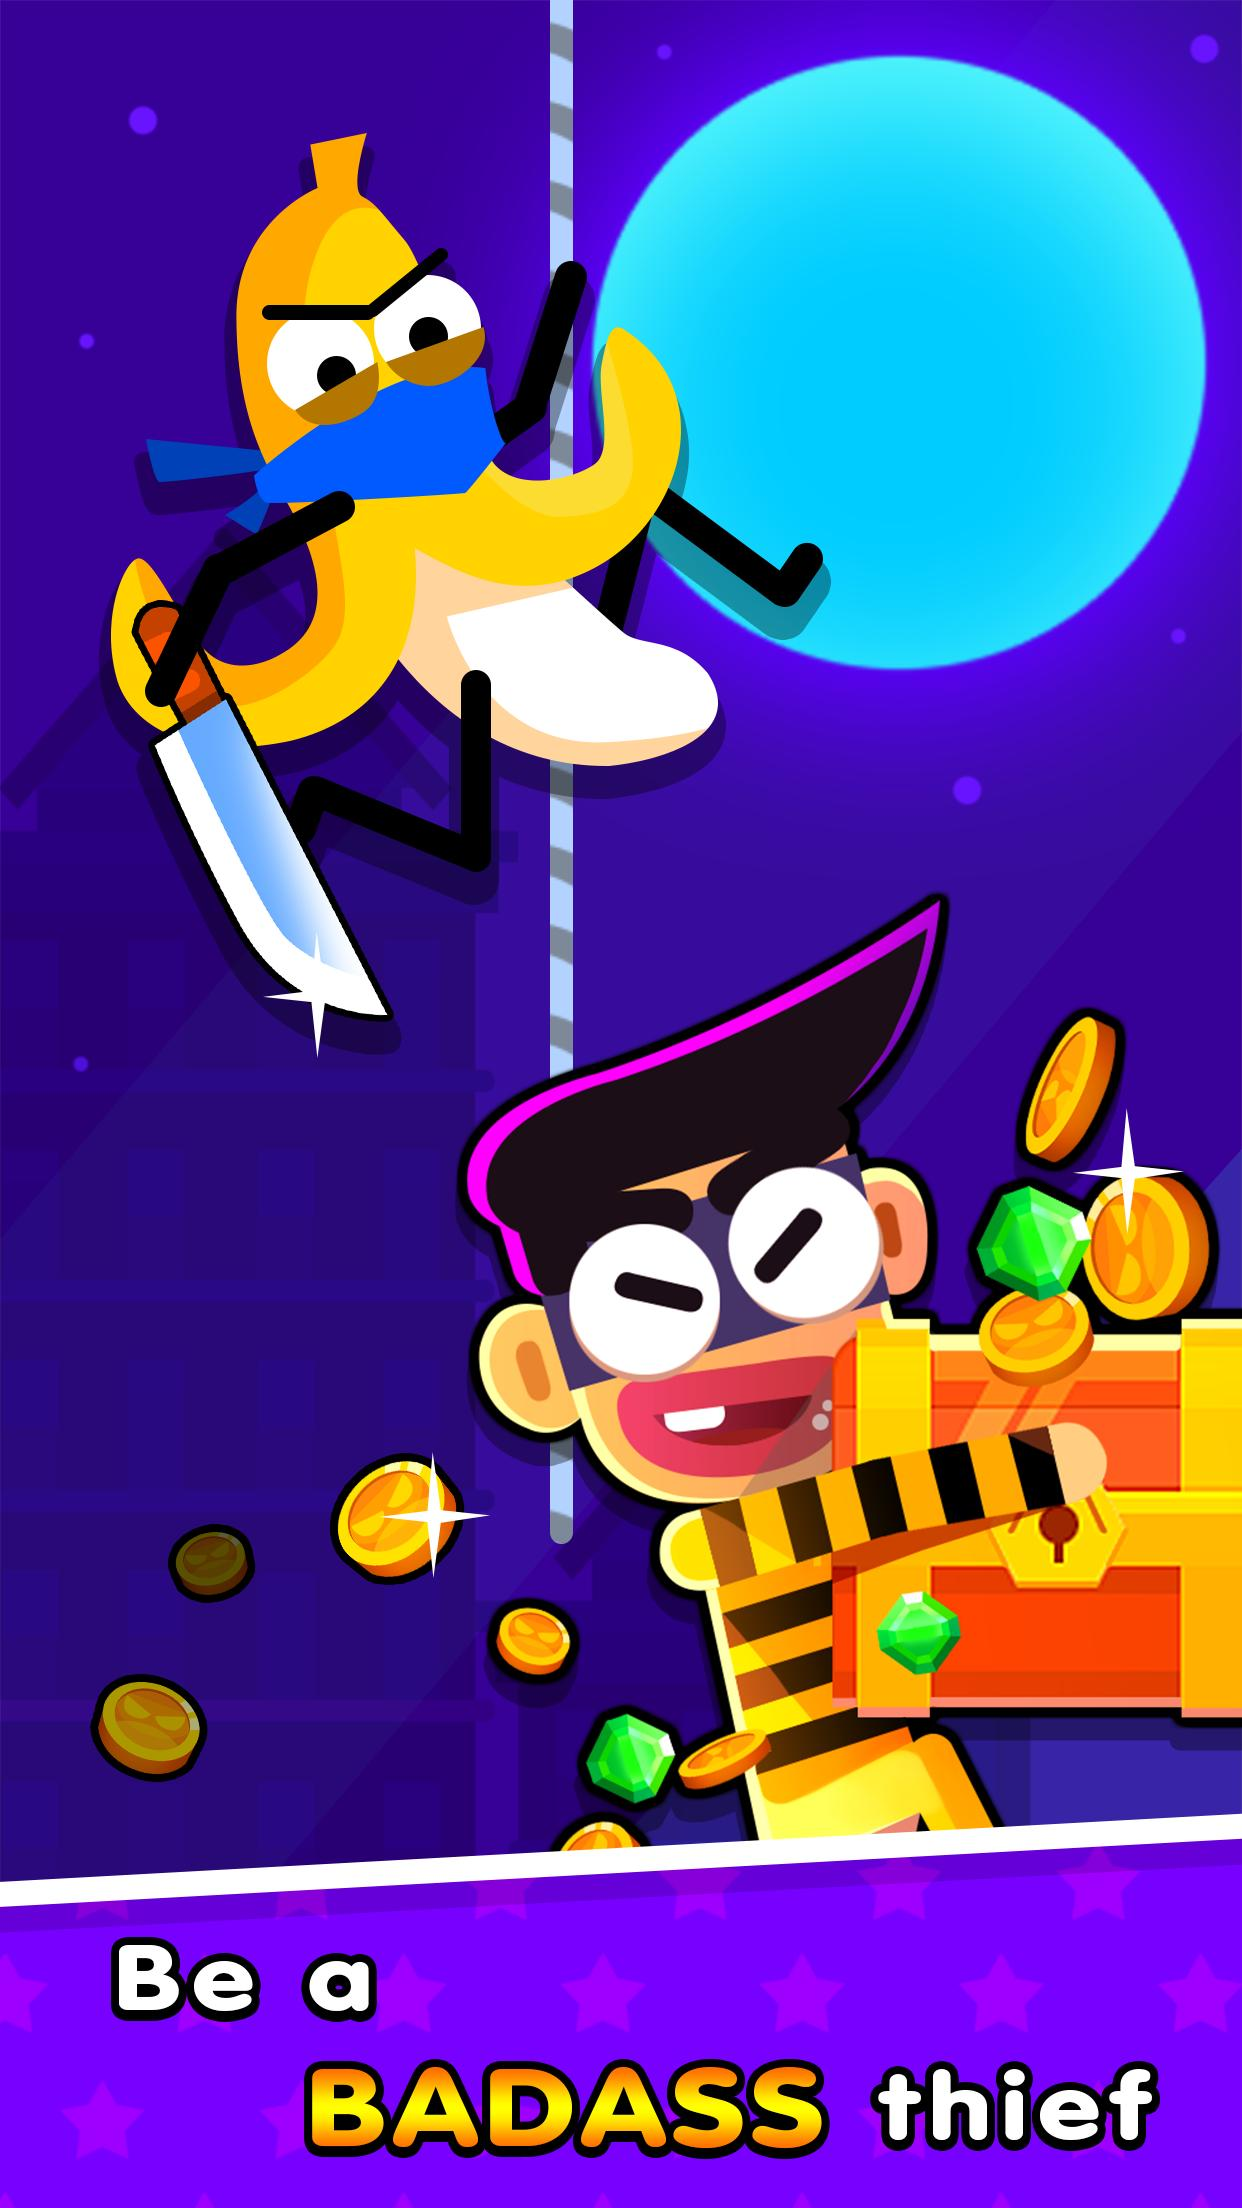 thief rivals race of trouble makers 1